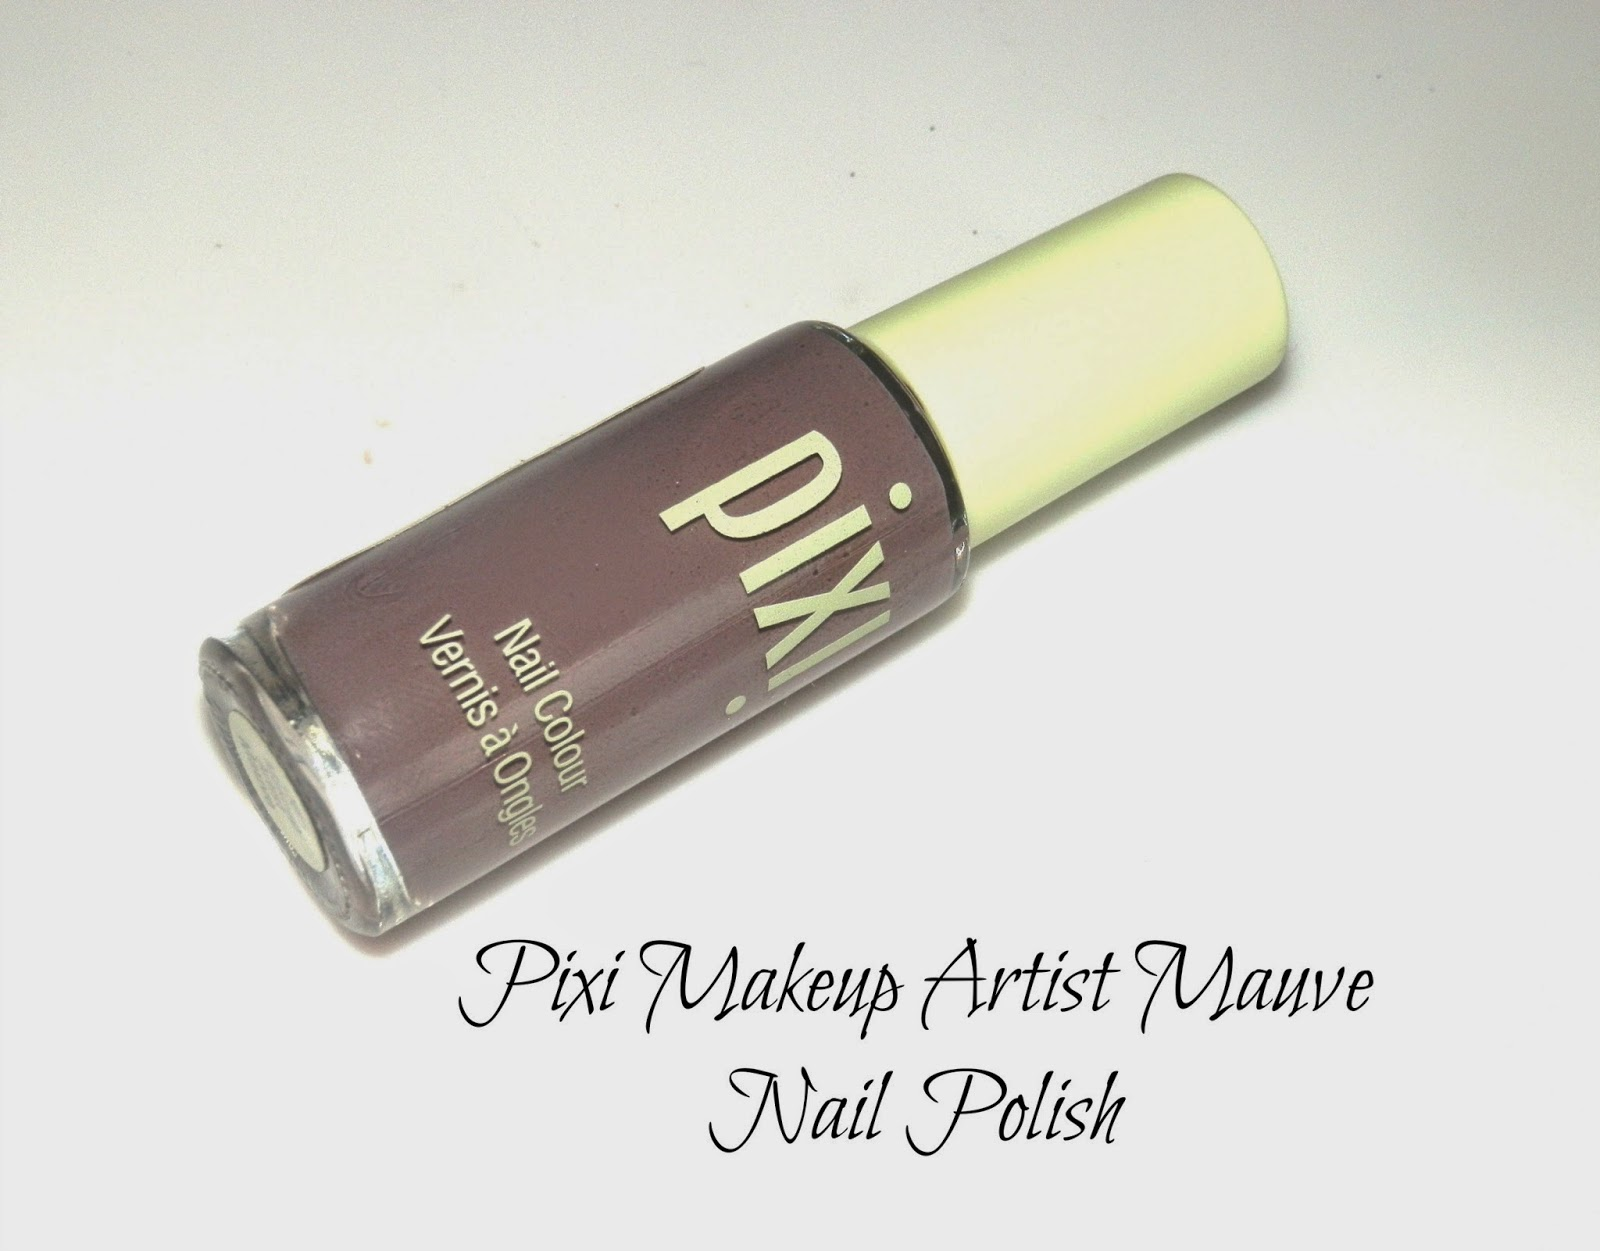 Pixi Makeup Artist Mauve Nail Polish Swatches